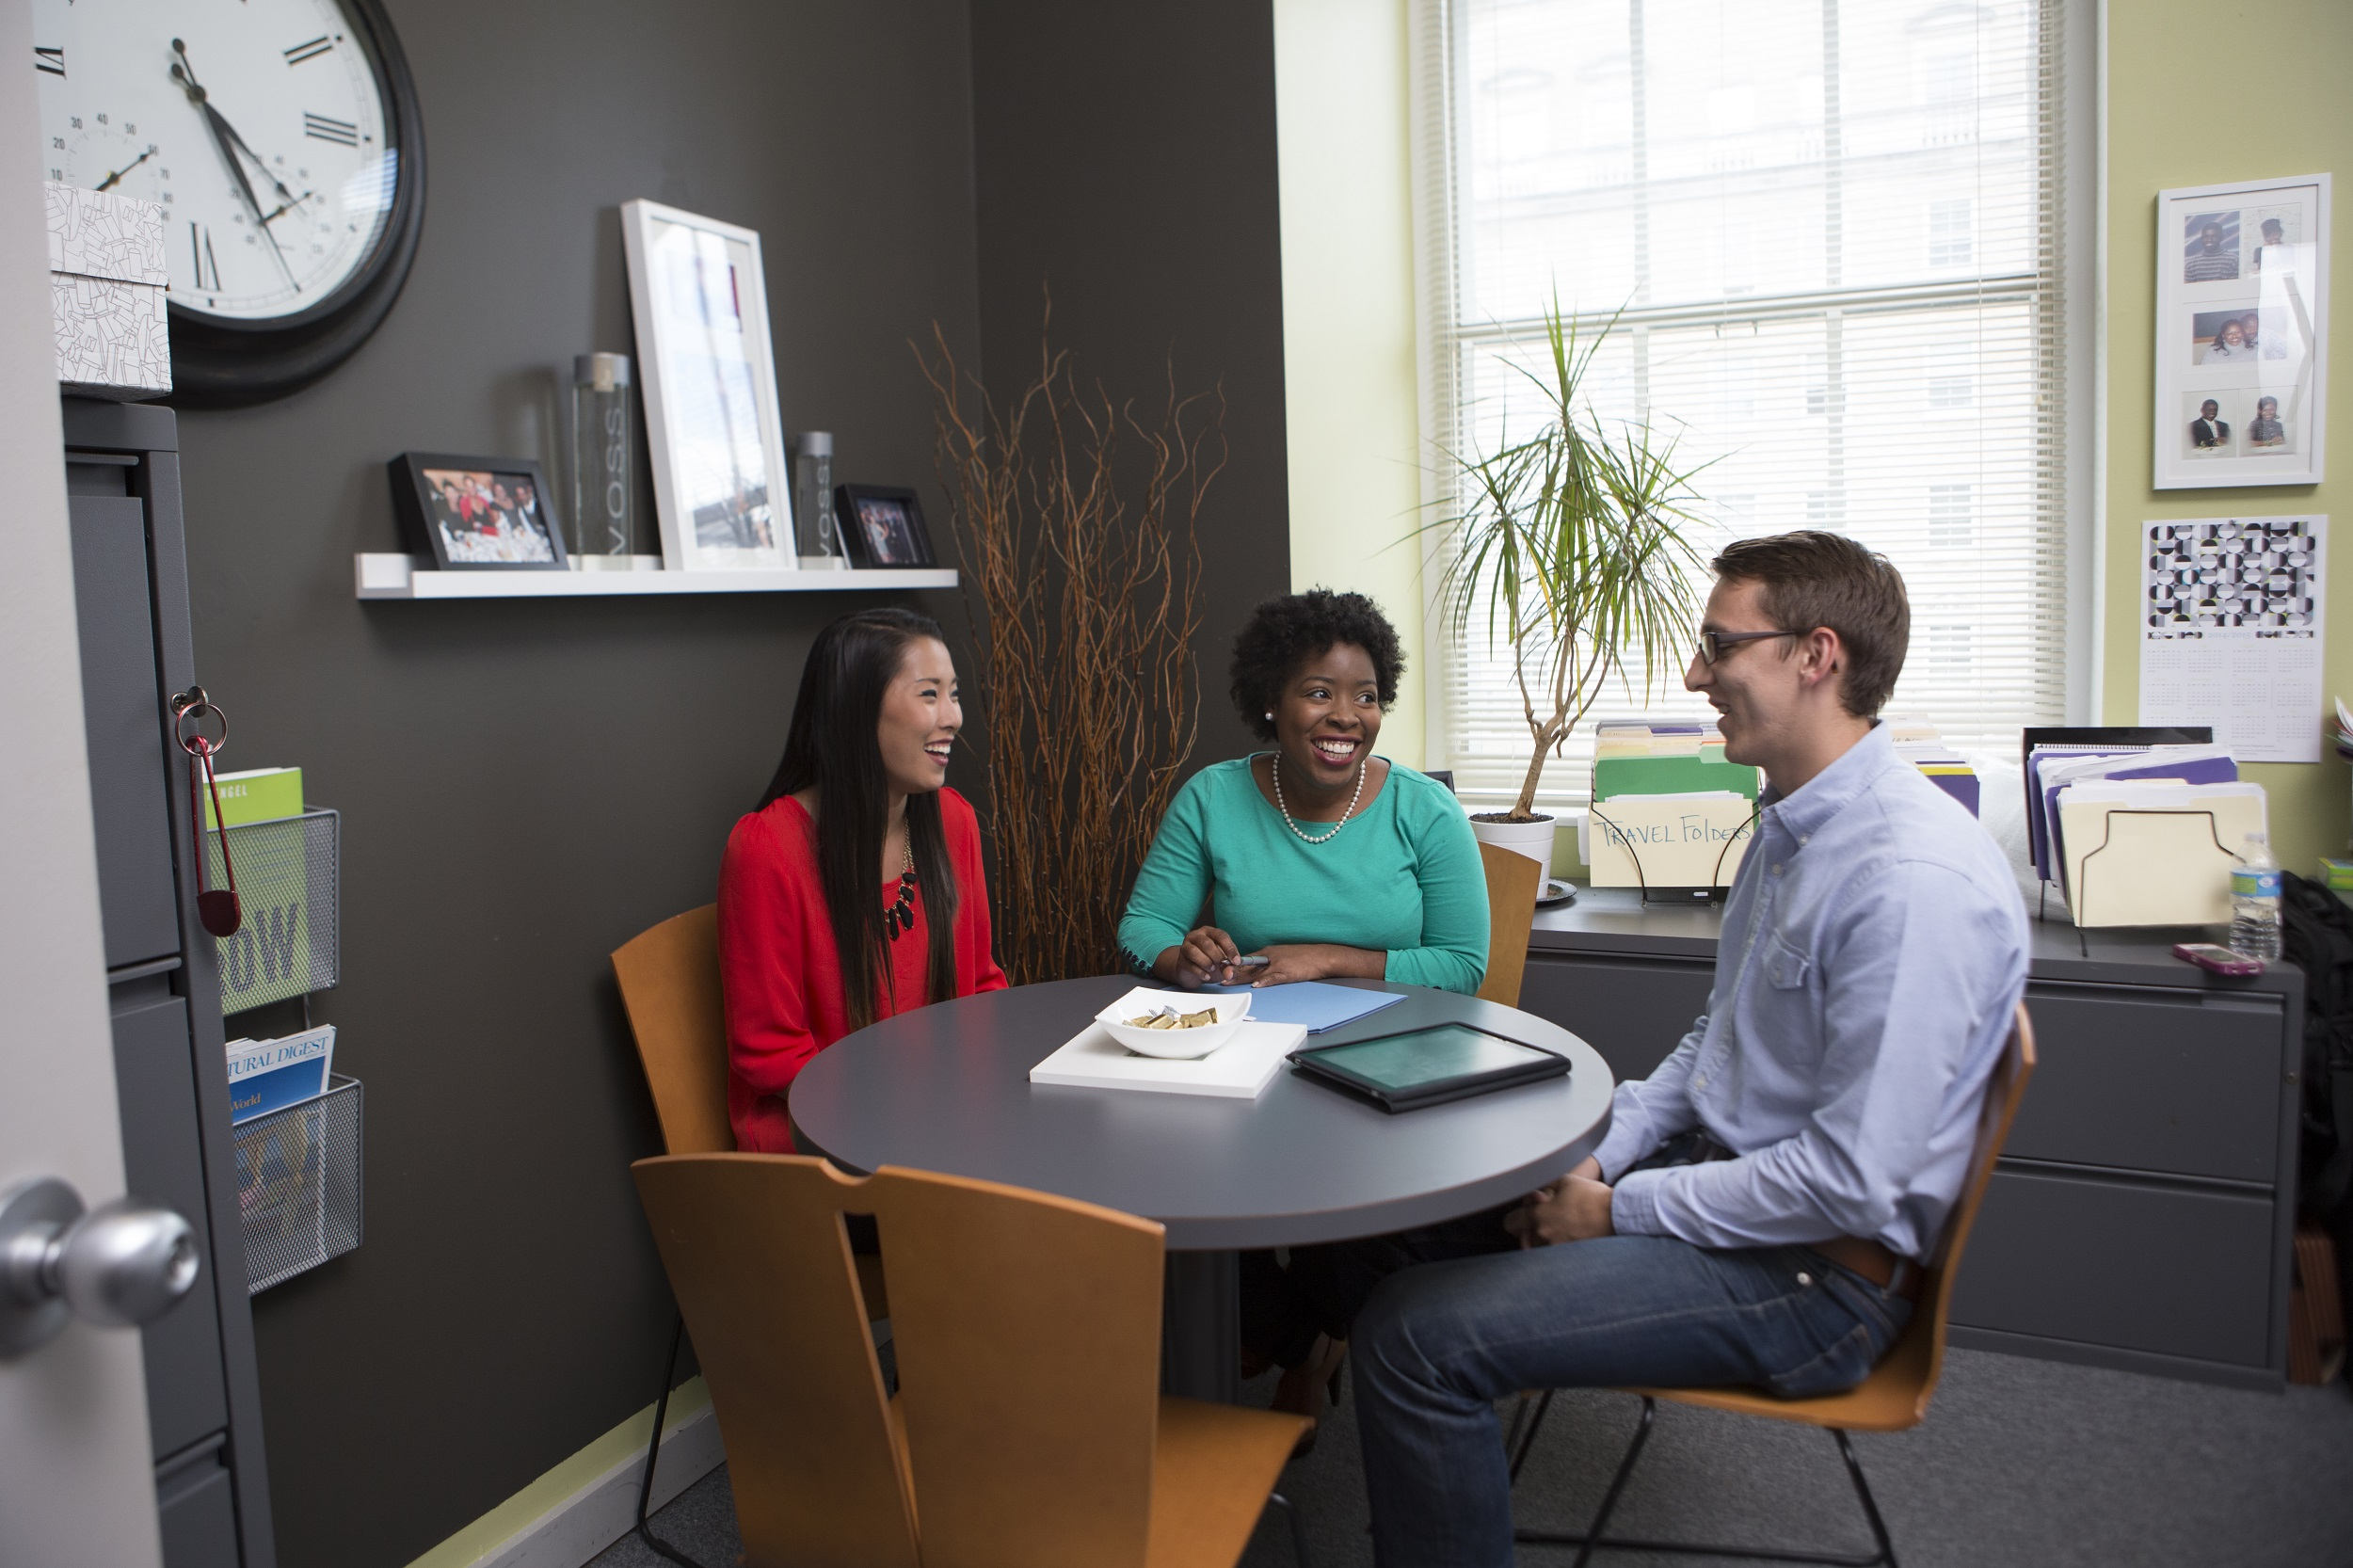 Three people sitting at a round table in an office.